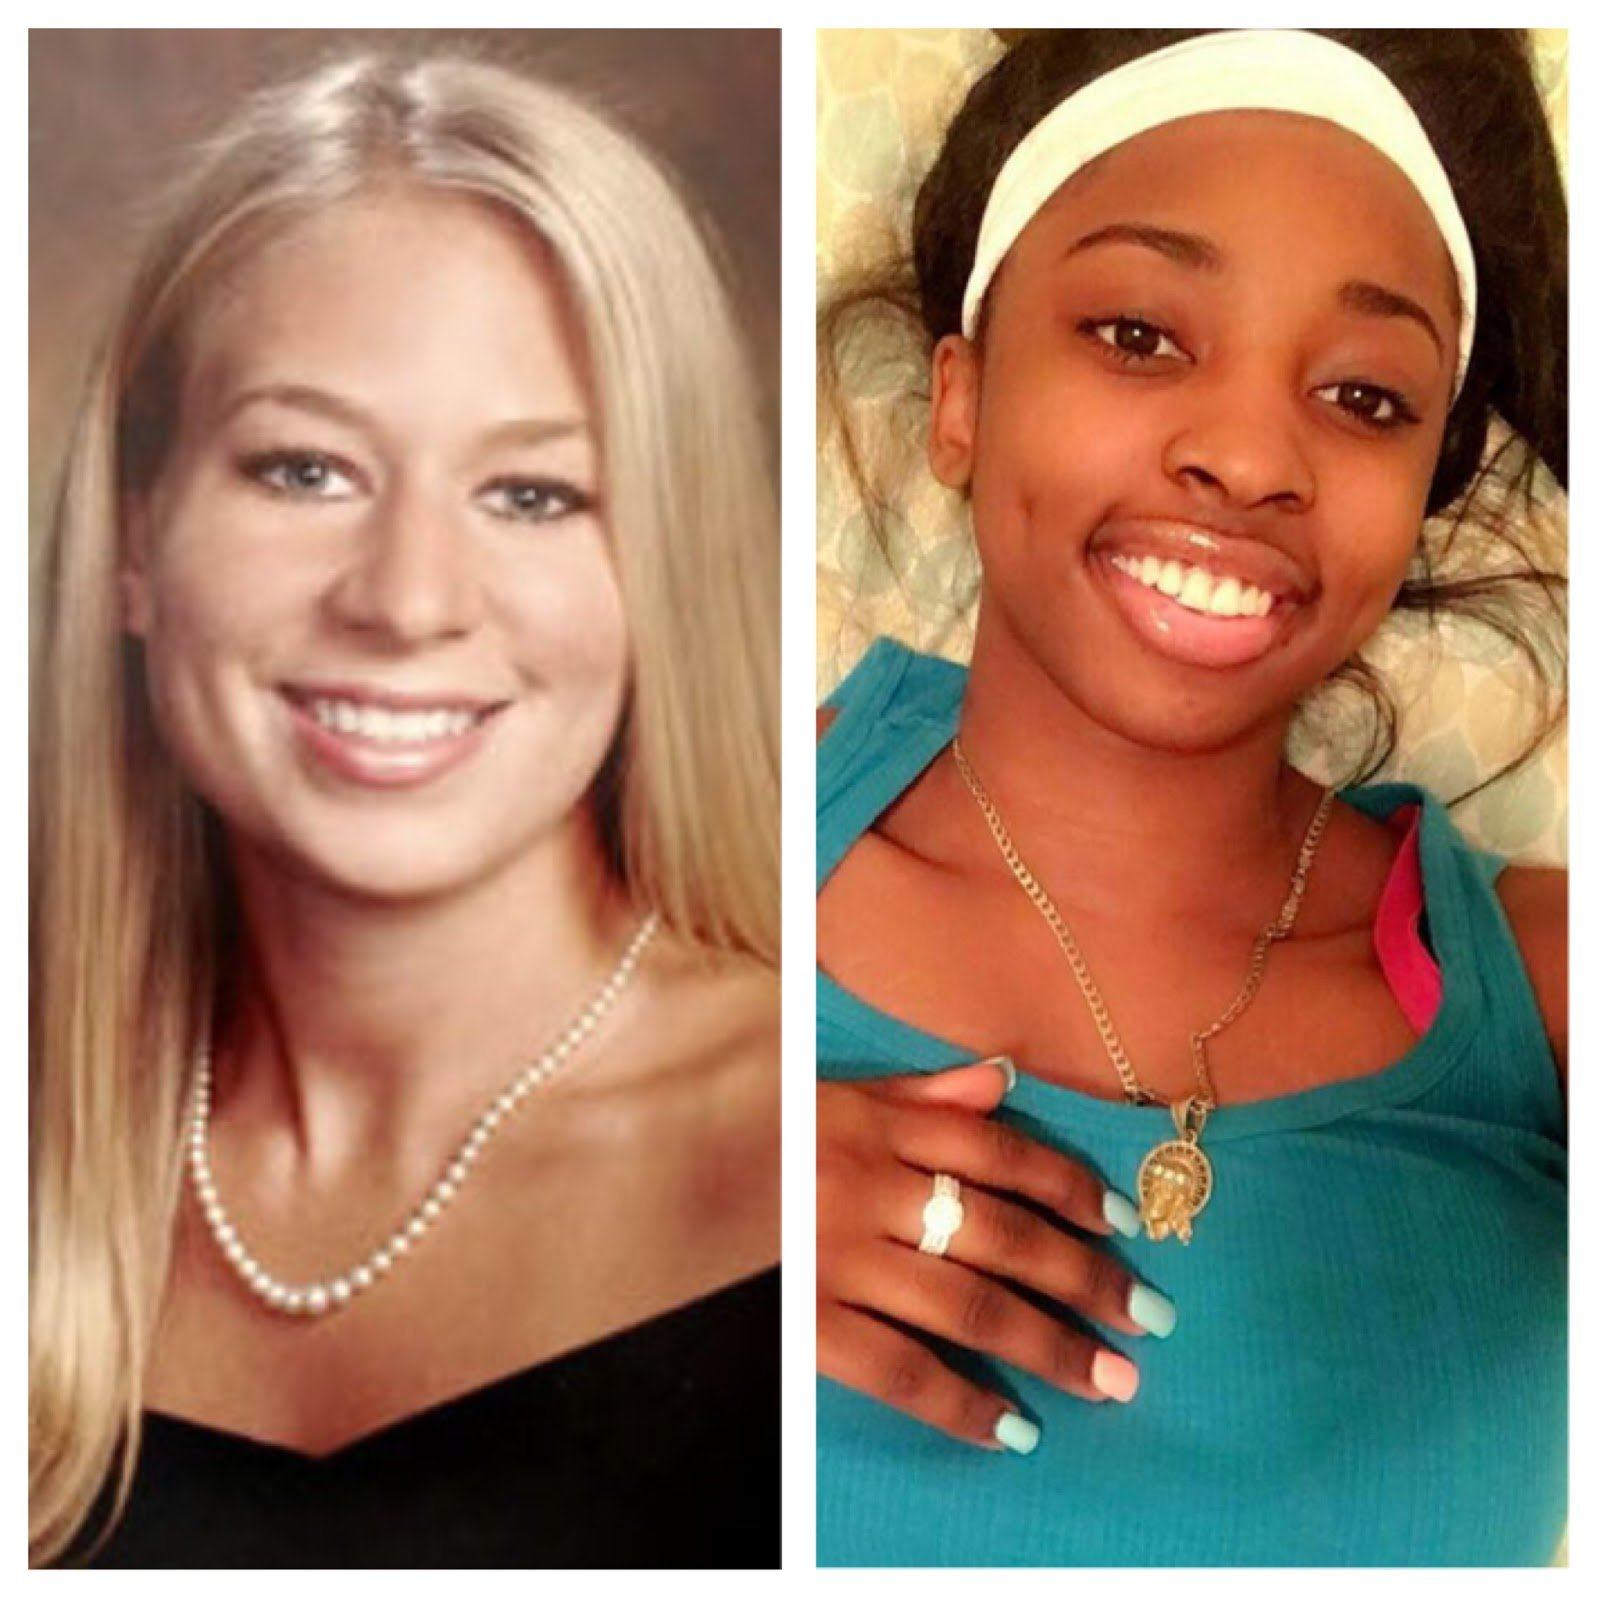 #SayHerName: Why Kenneka Jenkins Deserves the Same Attention as Natalee Holloway